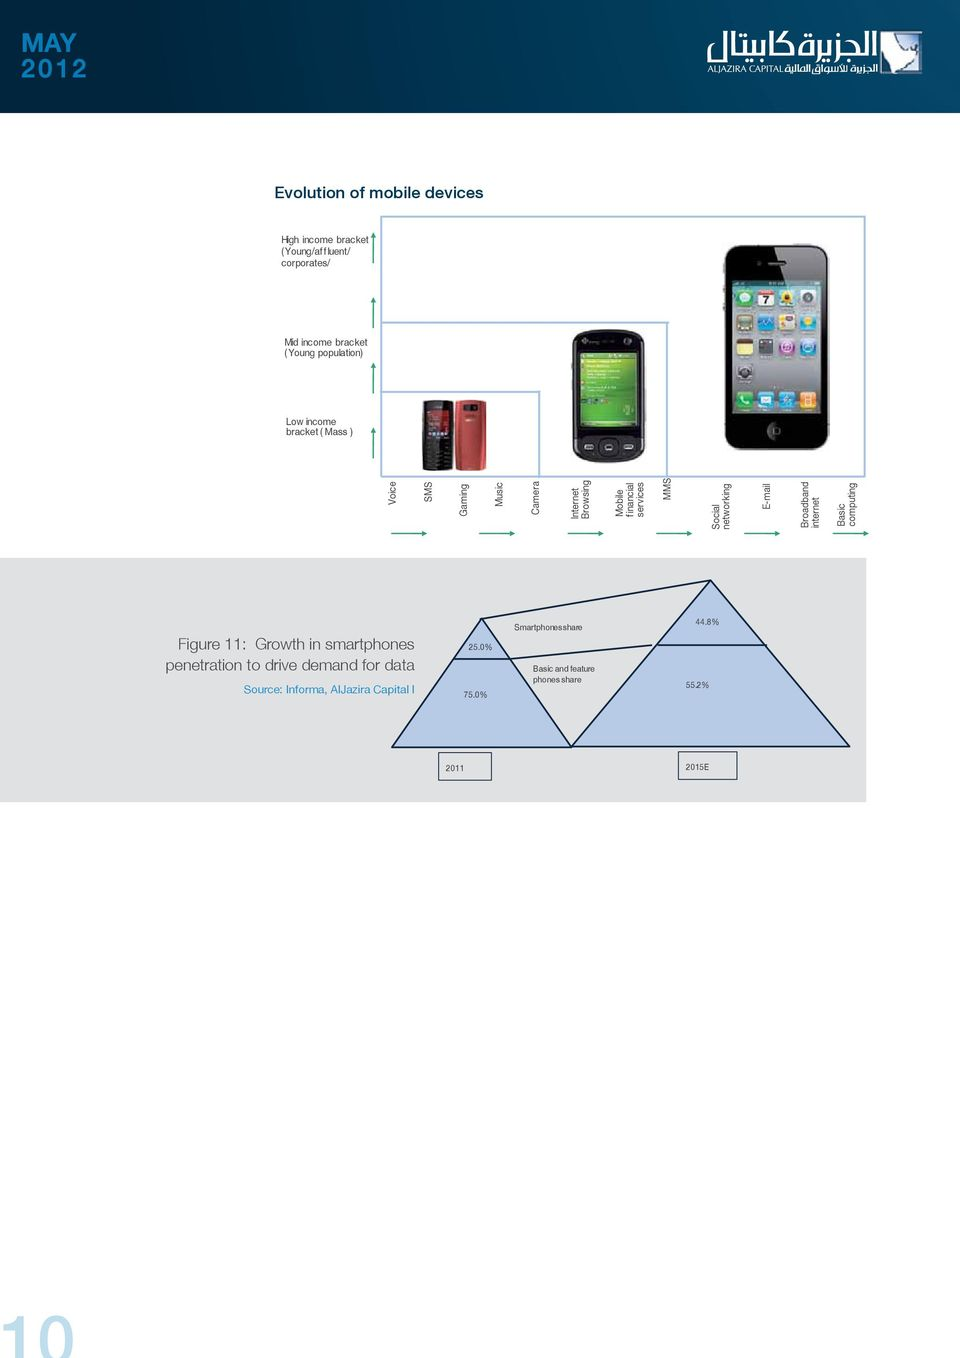 networking E-mail Broadband internet Basic computing Figure 11: Growth in smartphones penetration to drive demand for